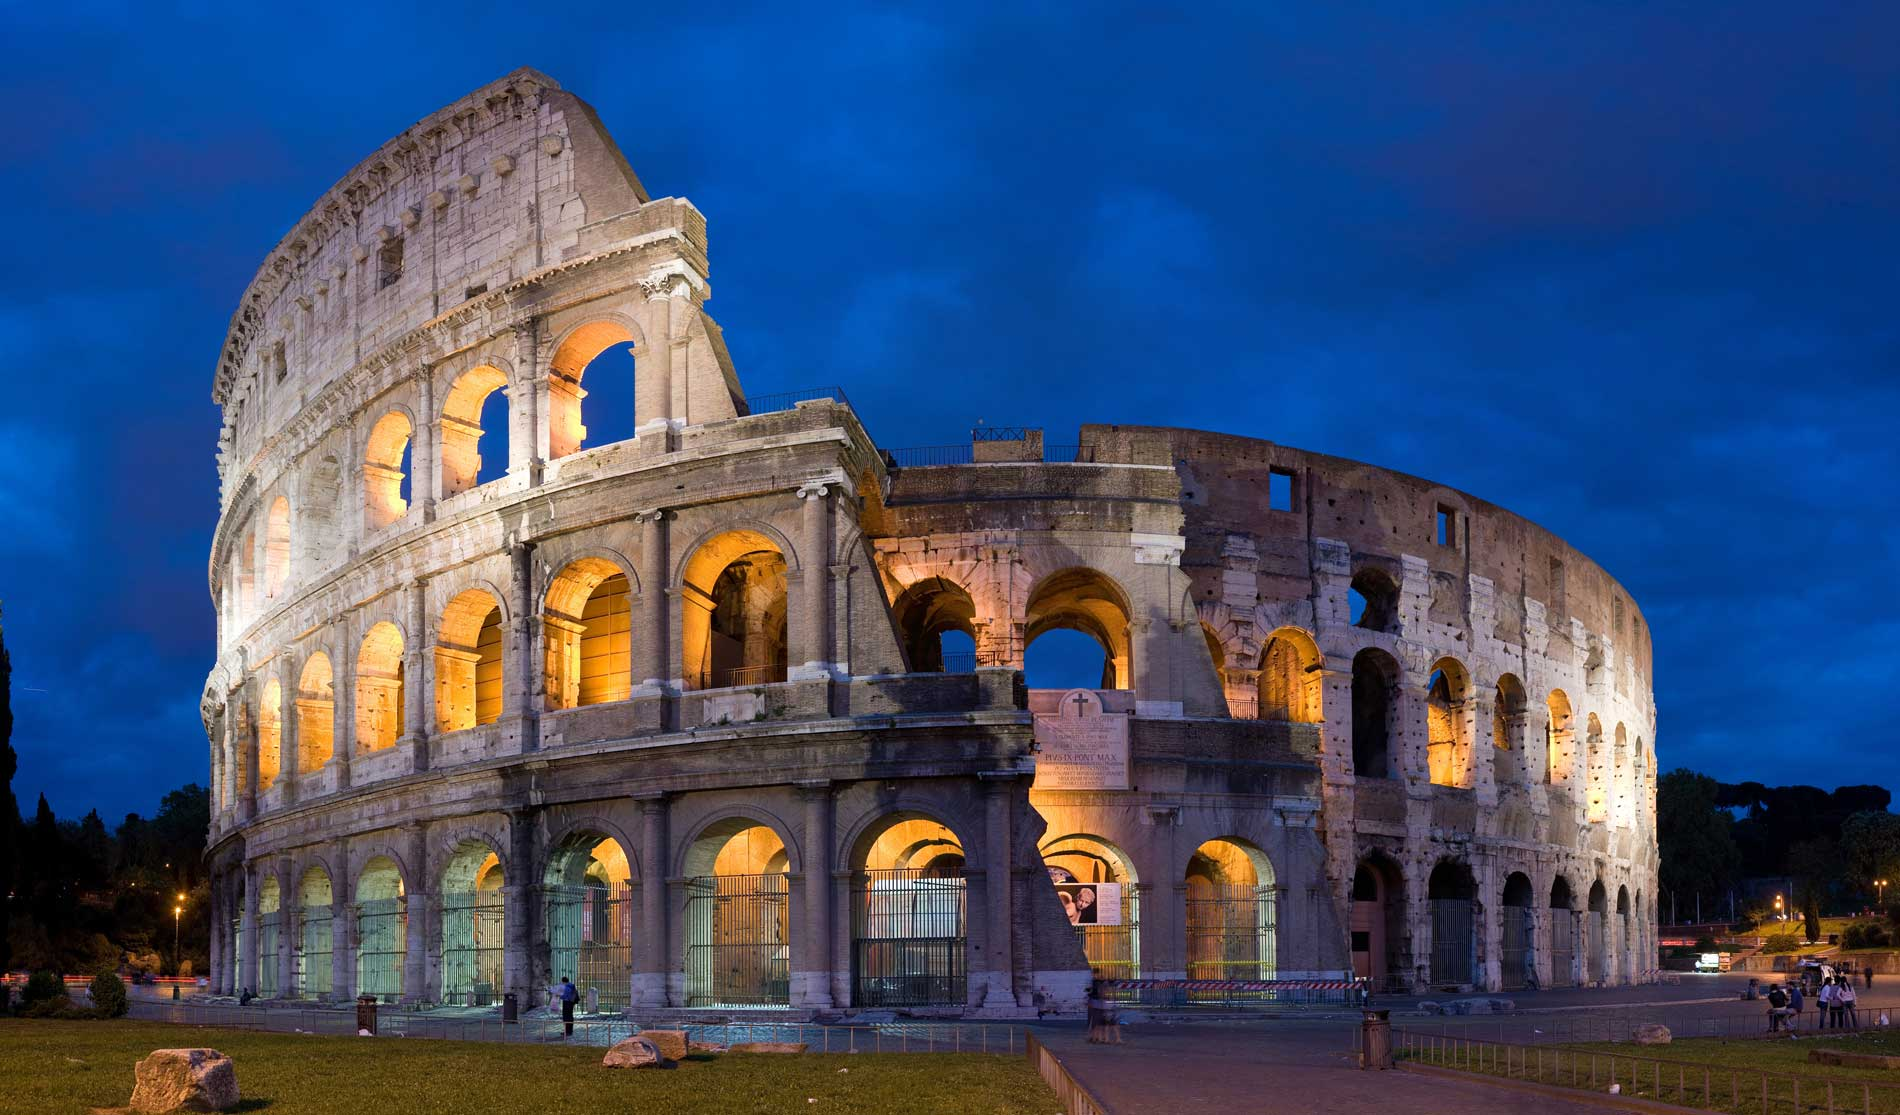 Colosseum in Rome Italy